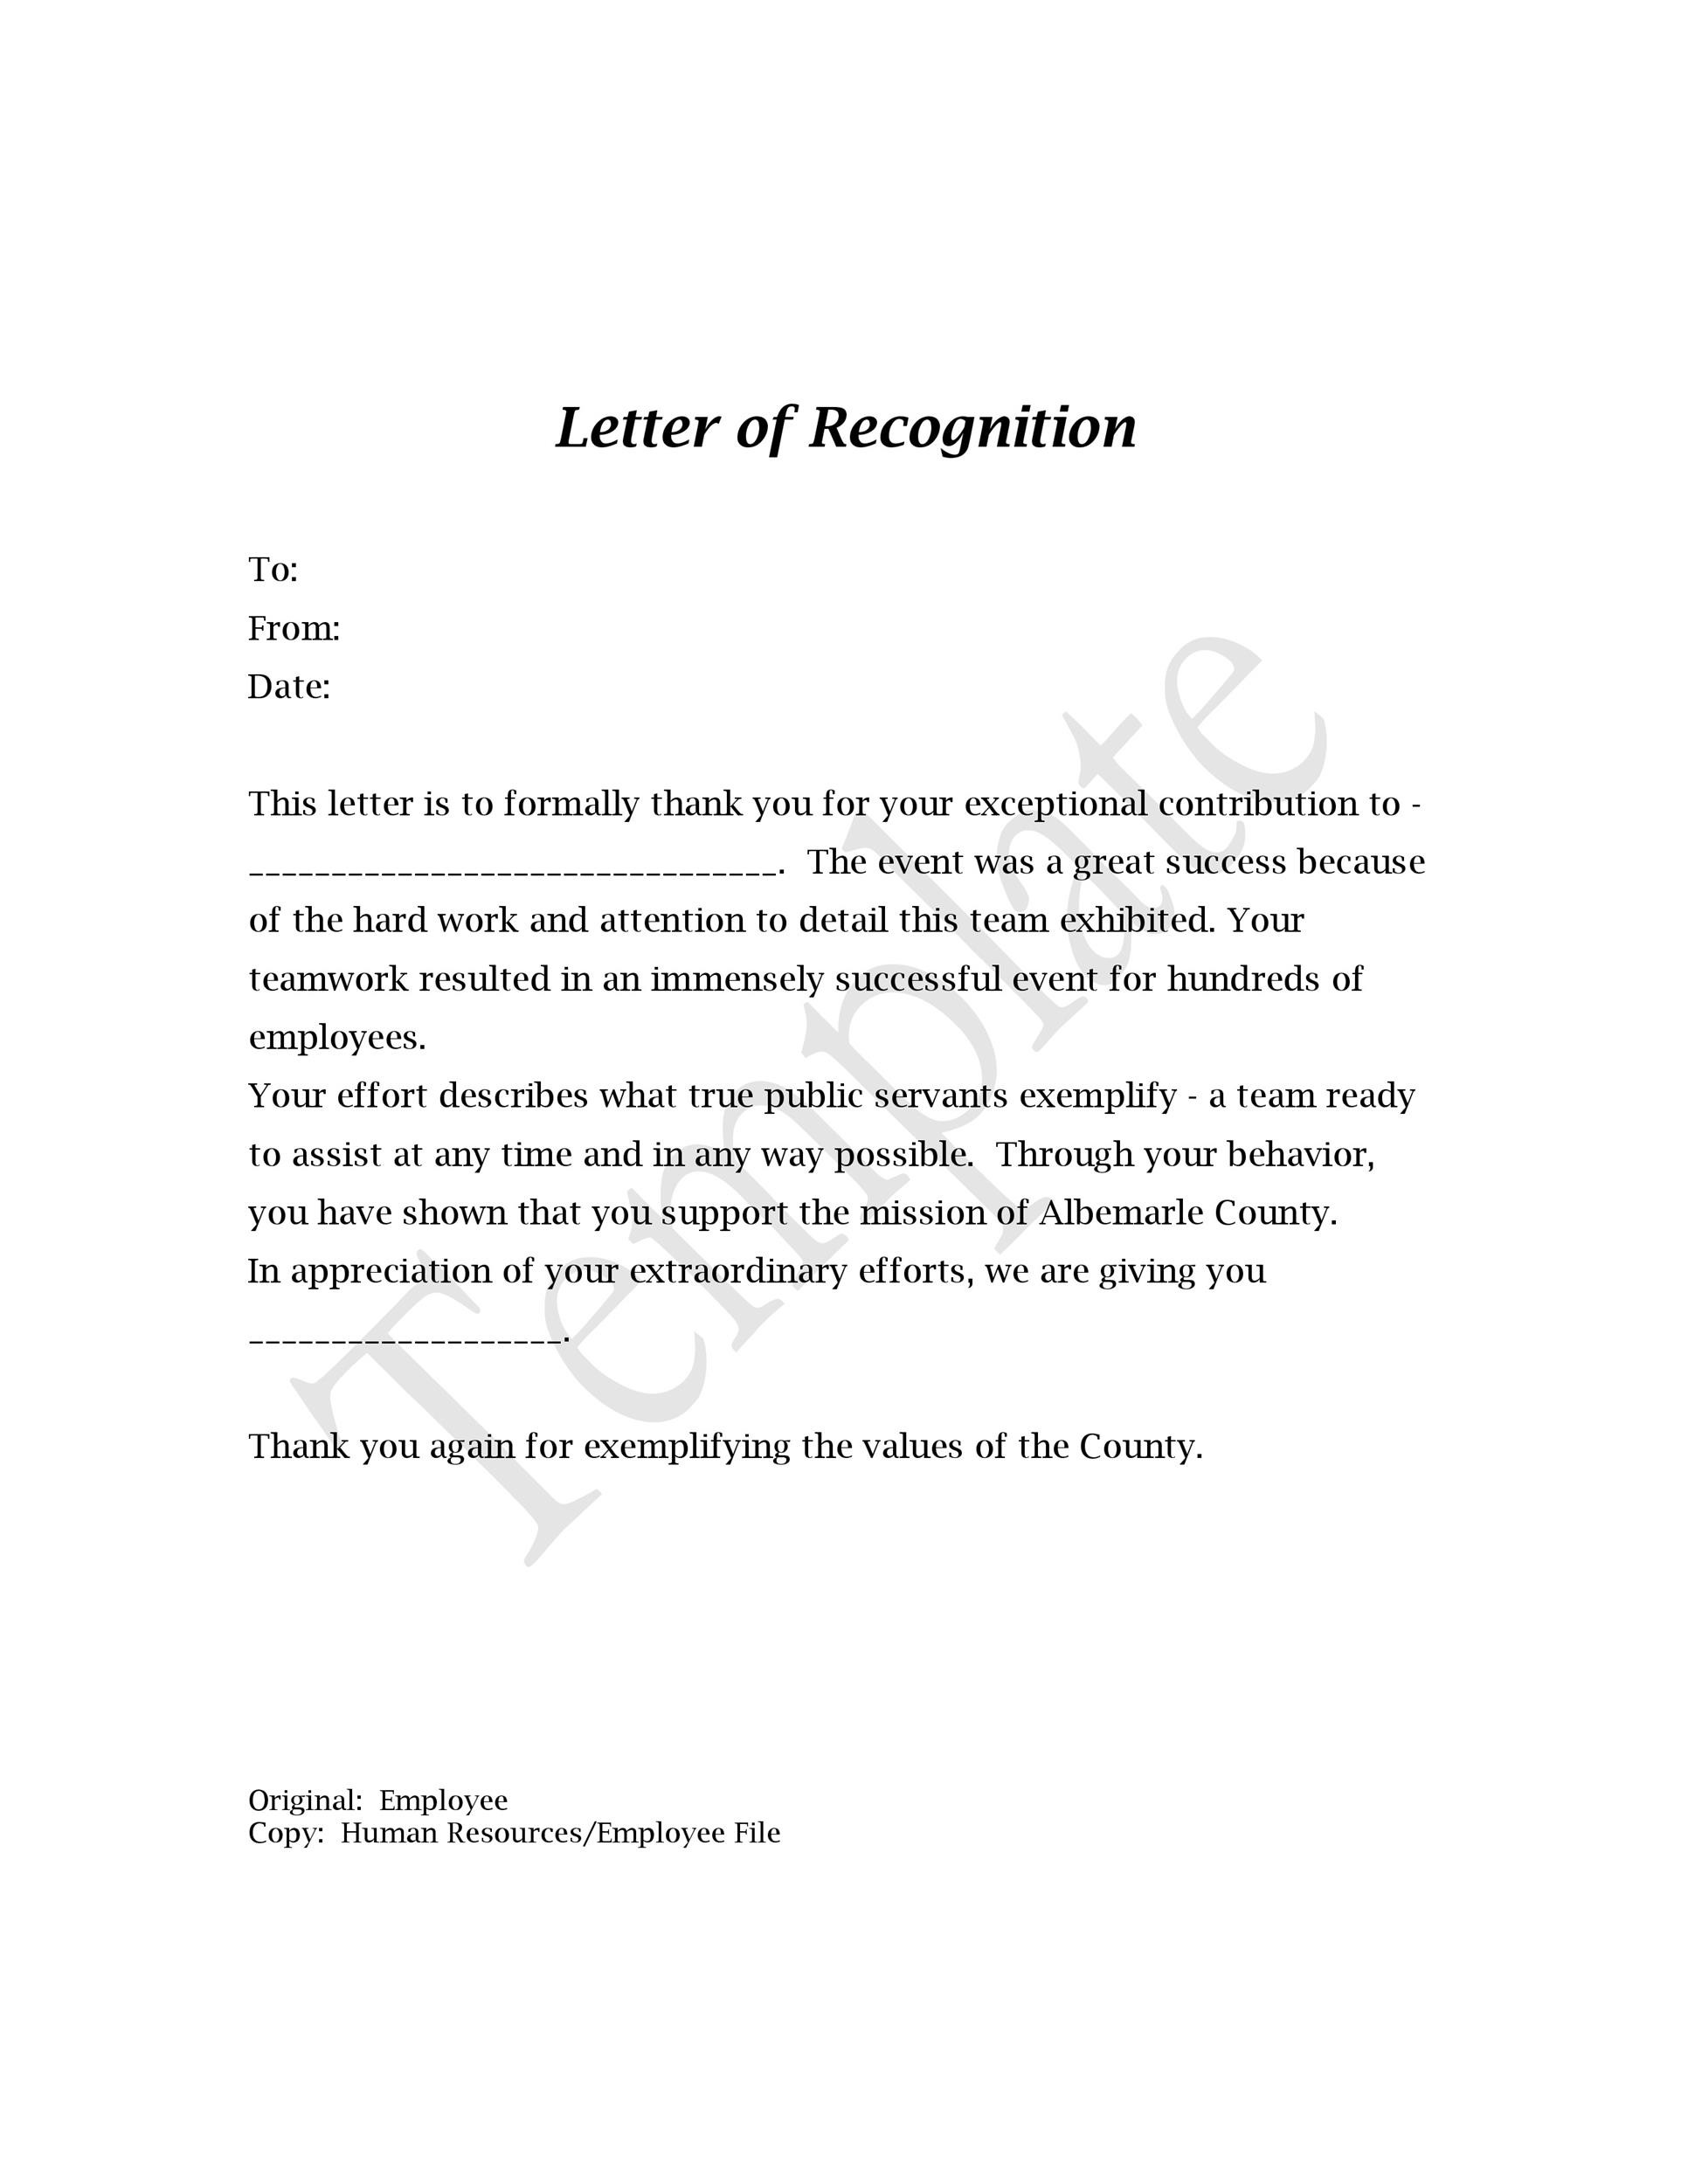 Employee Recognition Letter To Manager from templatelab.com